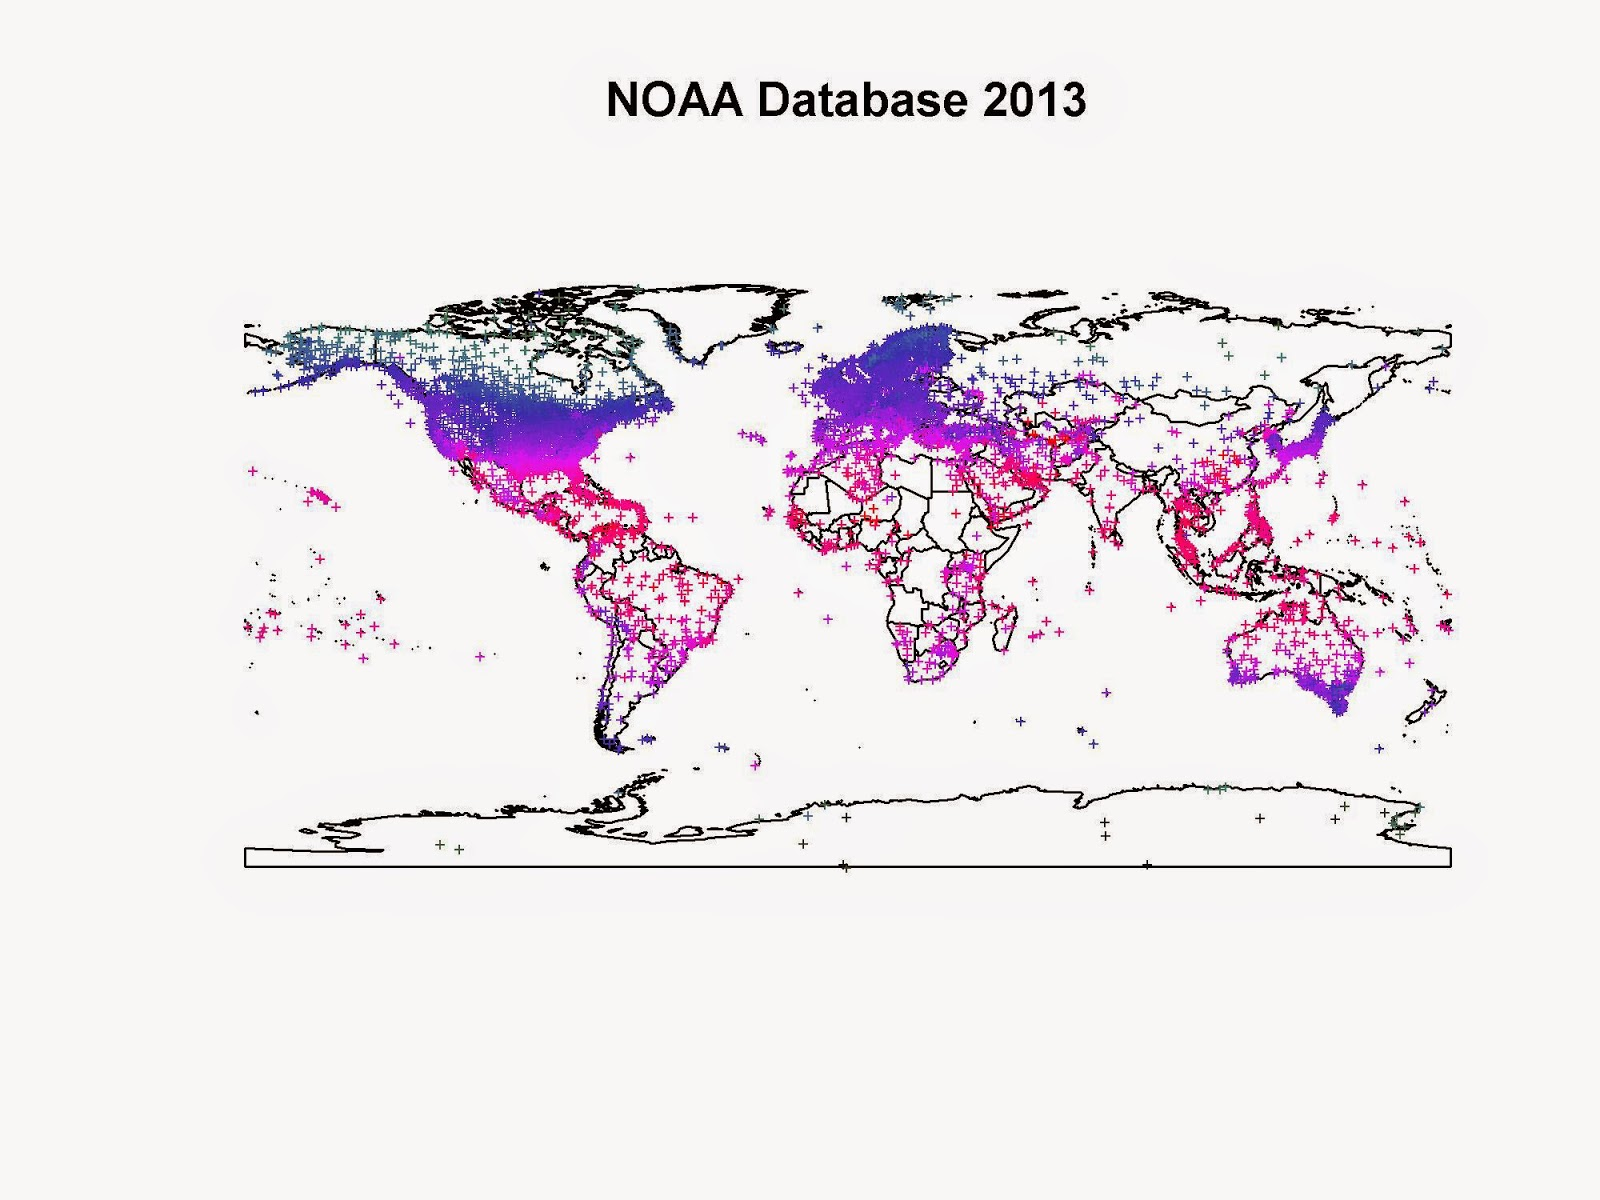 Accessing, cleaning and plotting NOAA Temperature Data